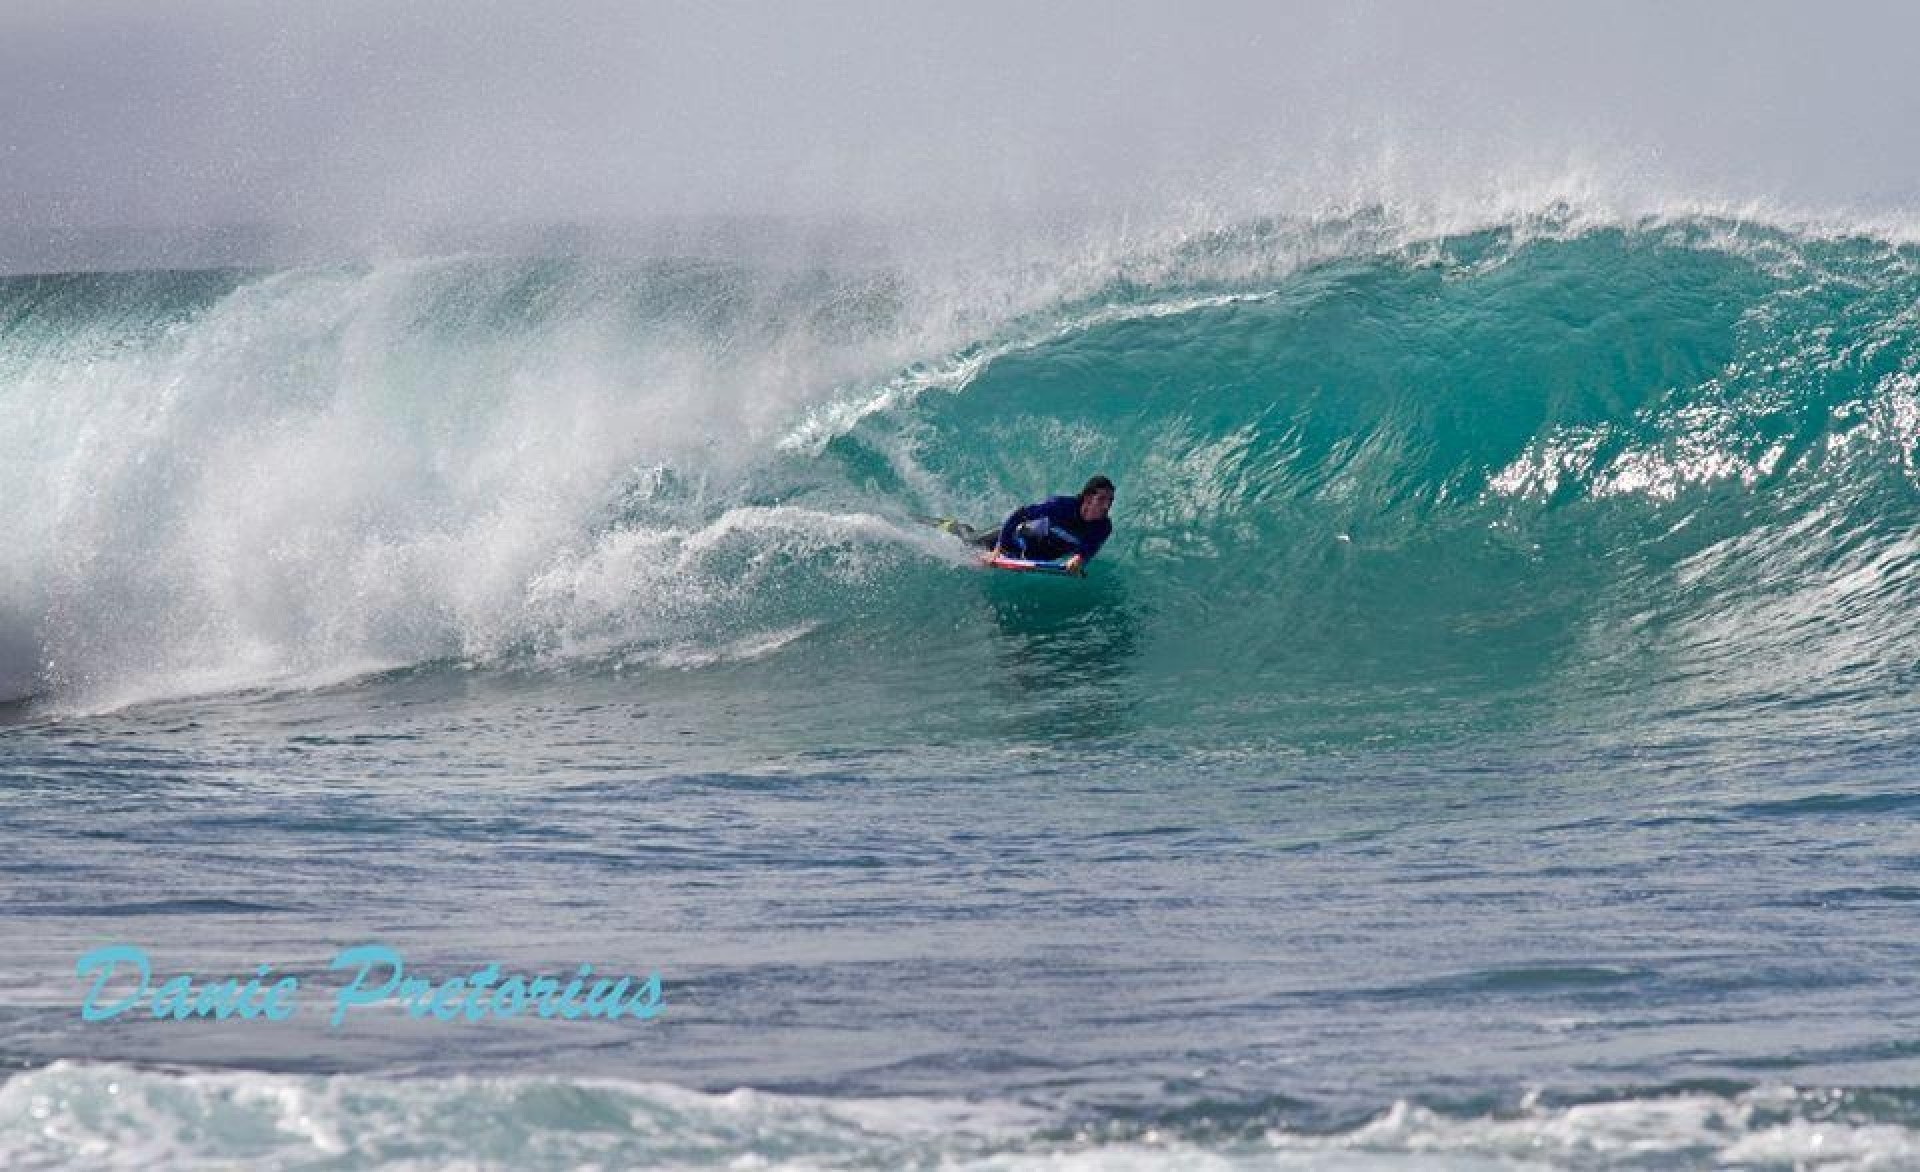 Chris Vermaak's photo of Mossel Bay